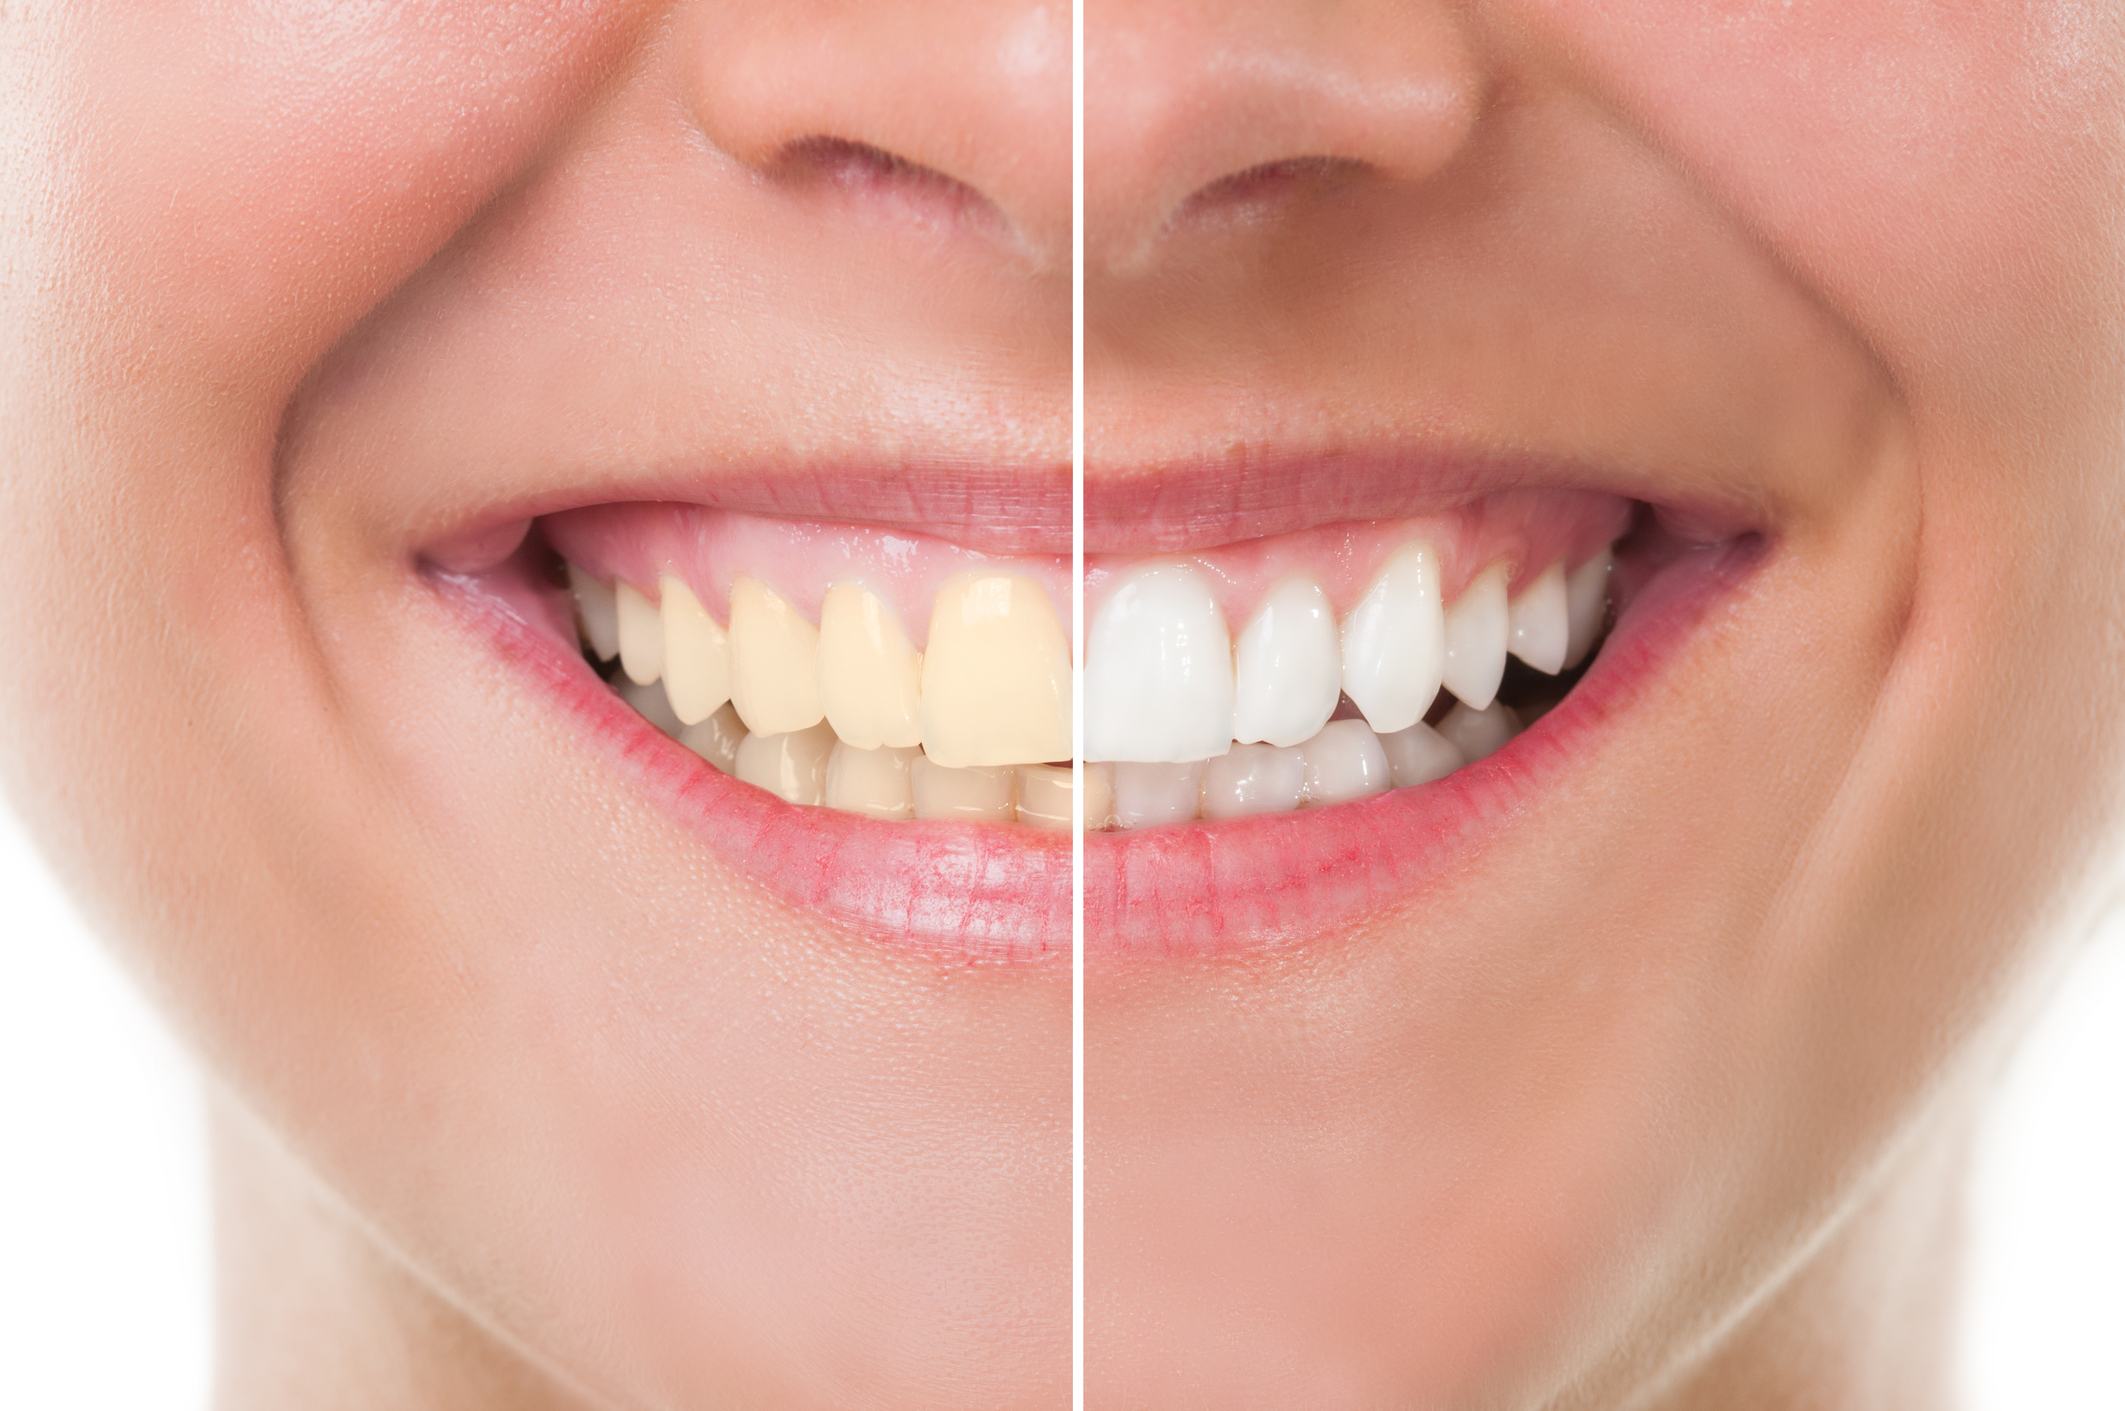 Teeth Whitening: Facts vs Fiction